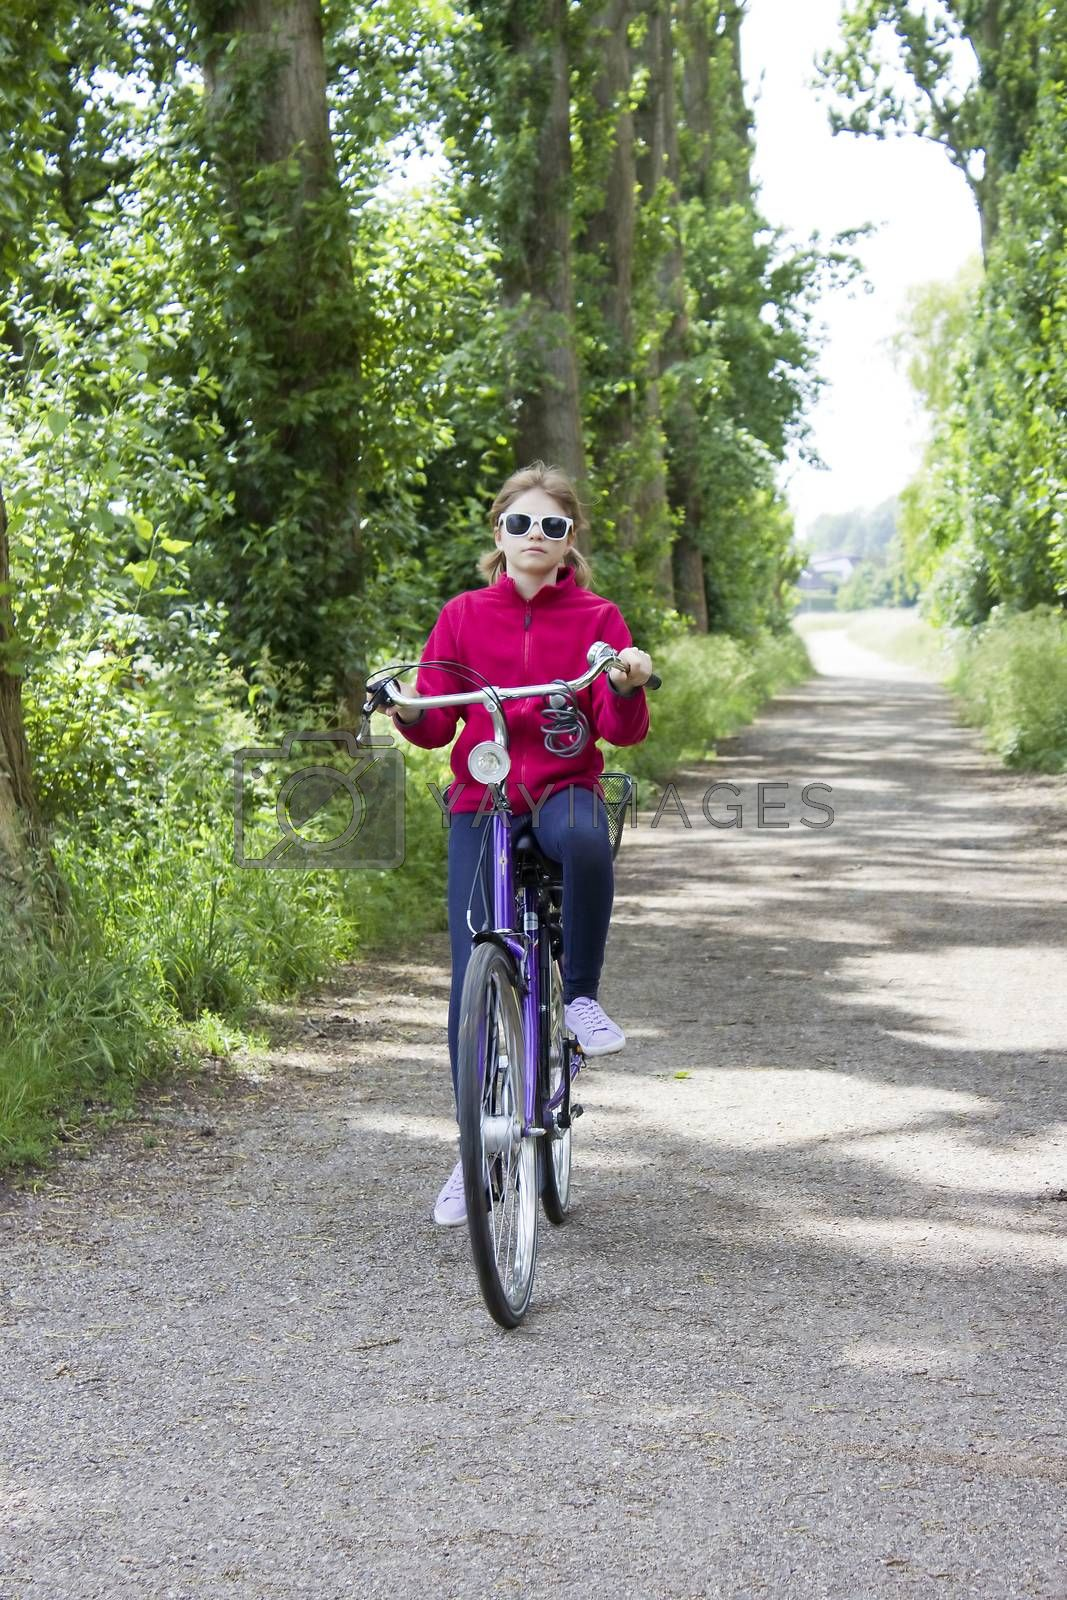 Royalty free image of young girl with her bicycle by miradrozdowski